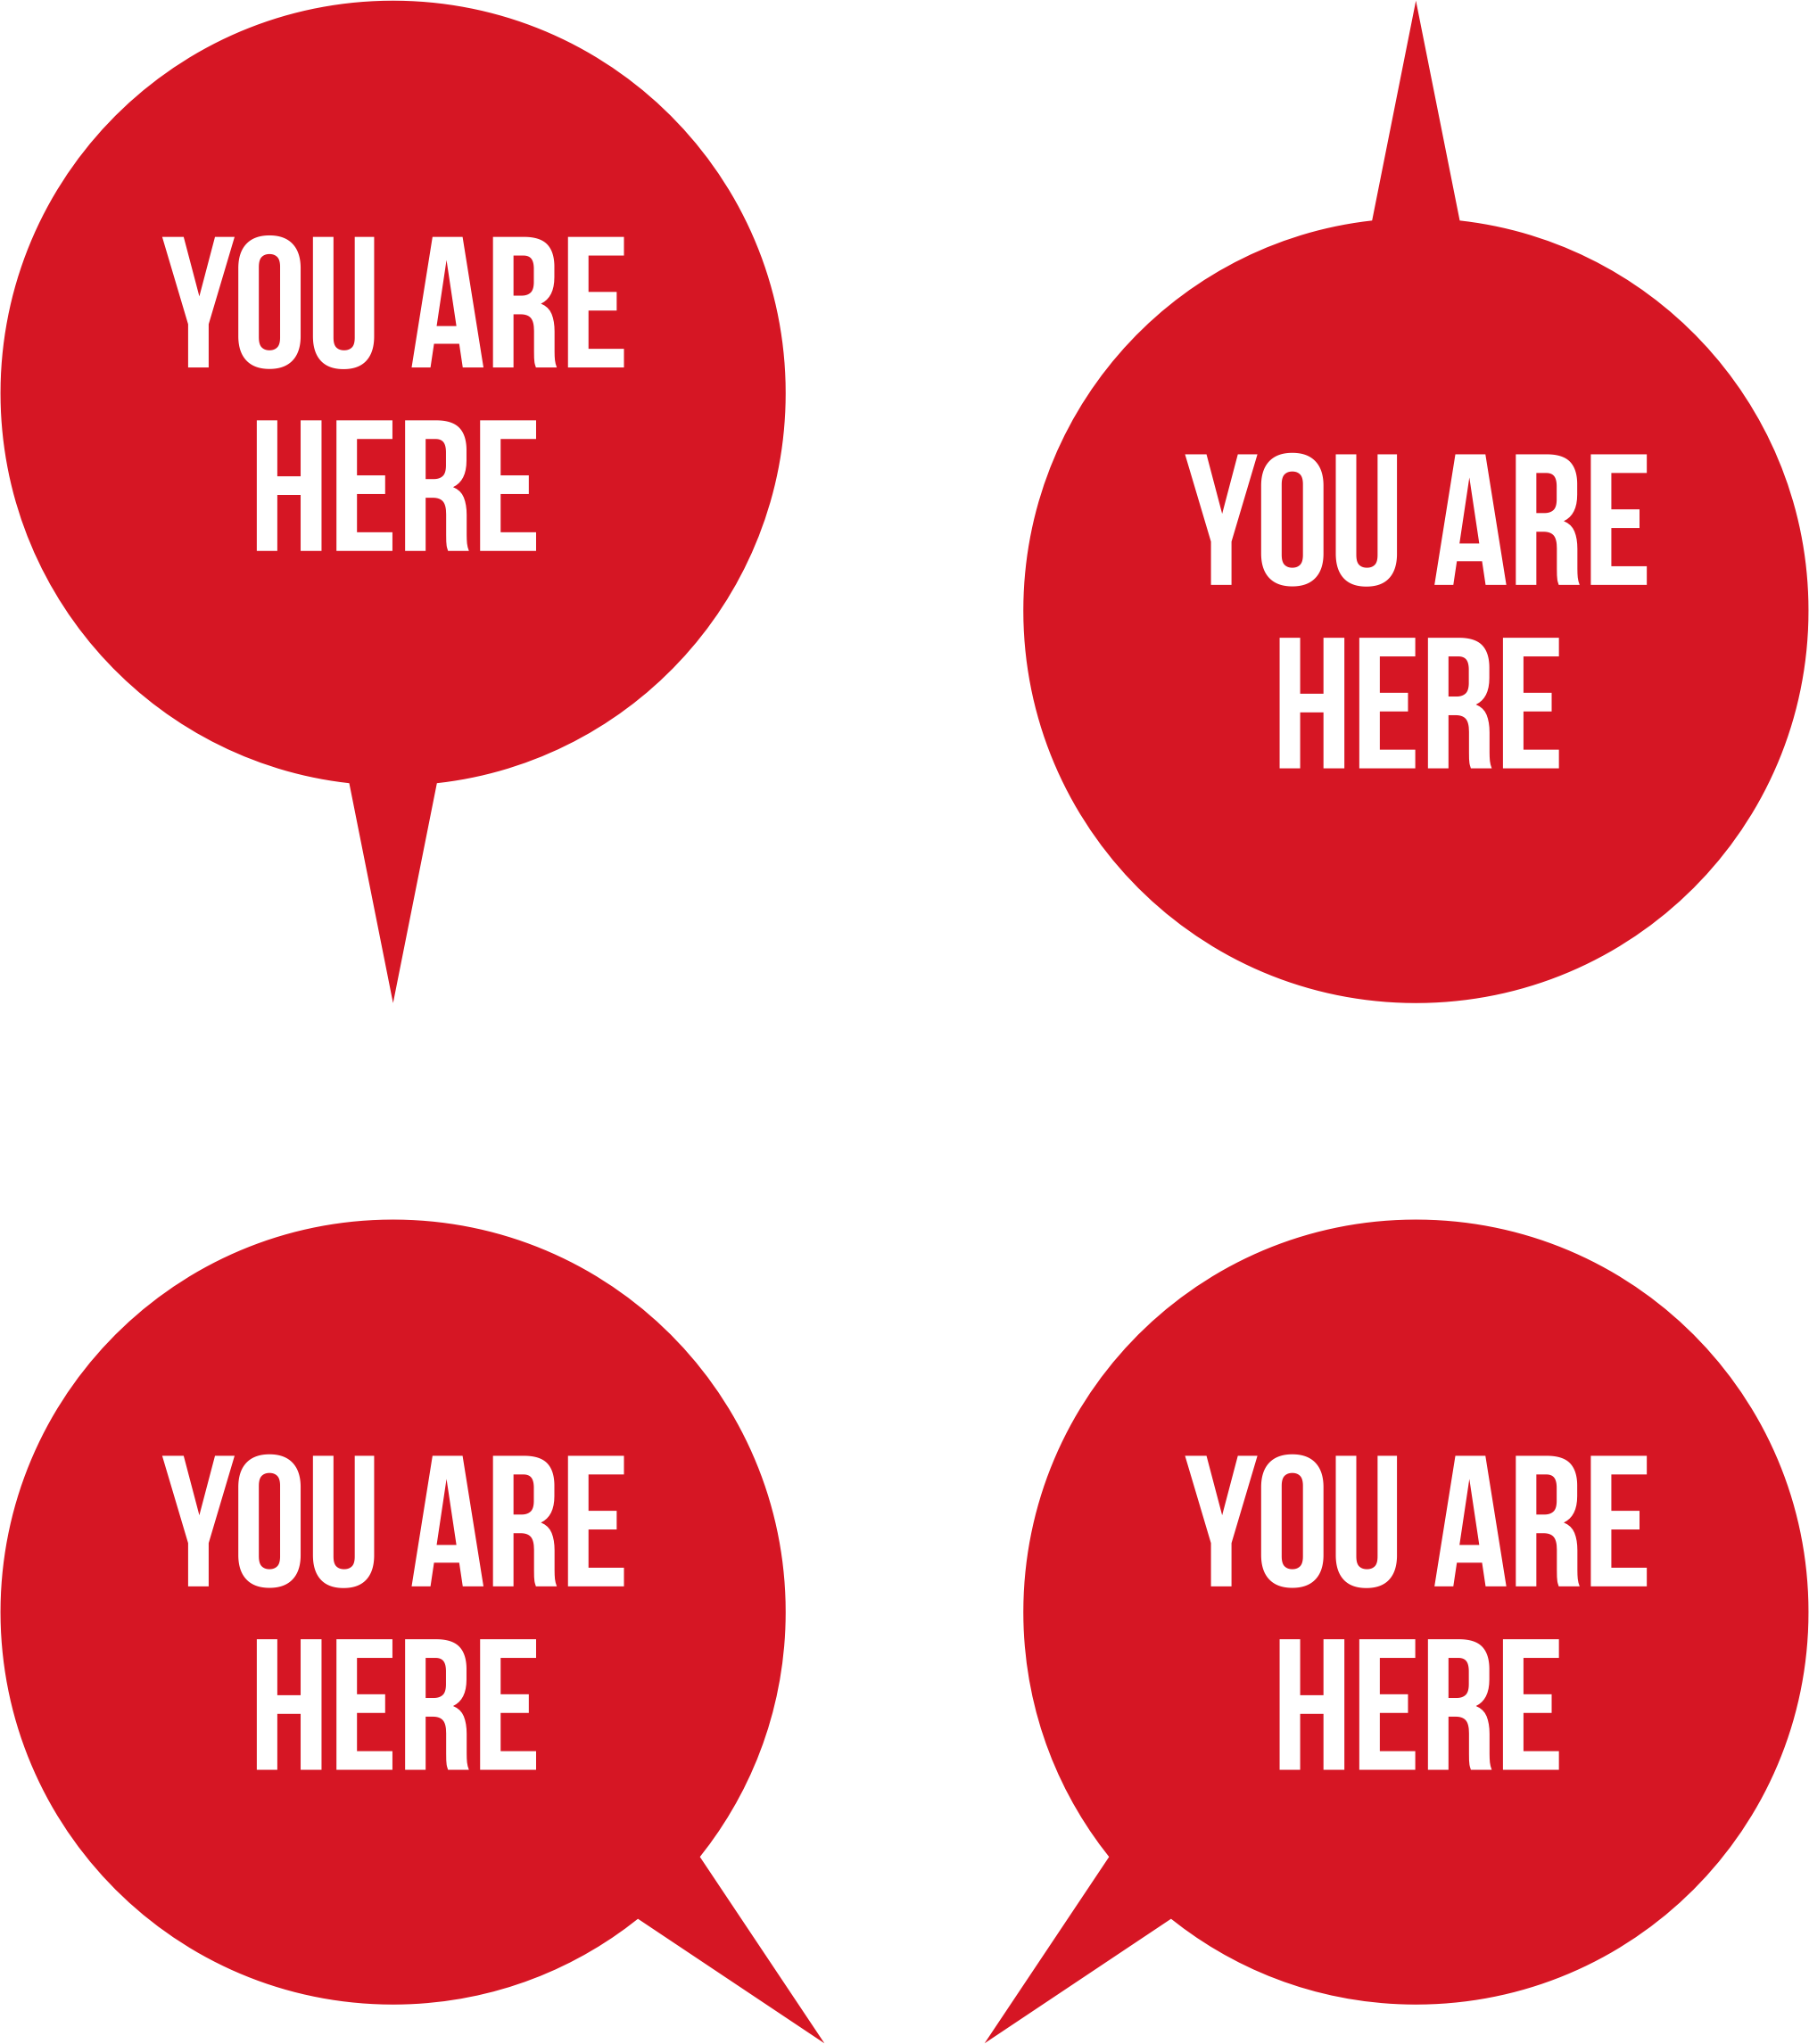 you are here png 8 png image